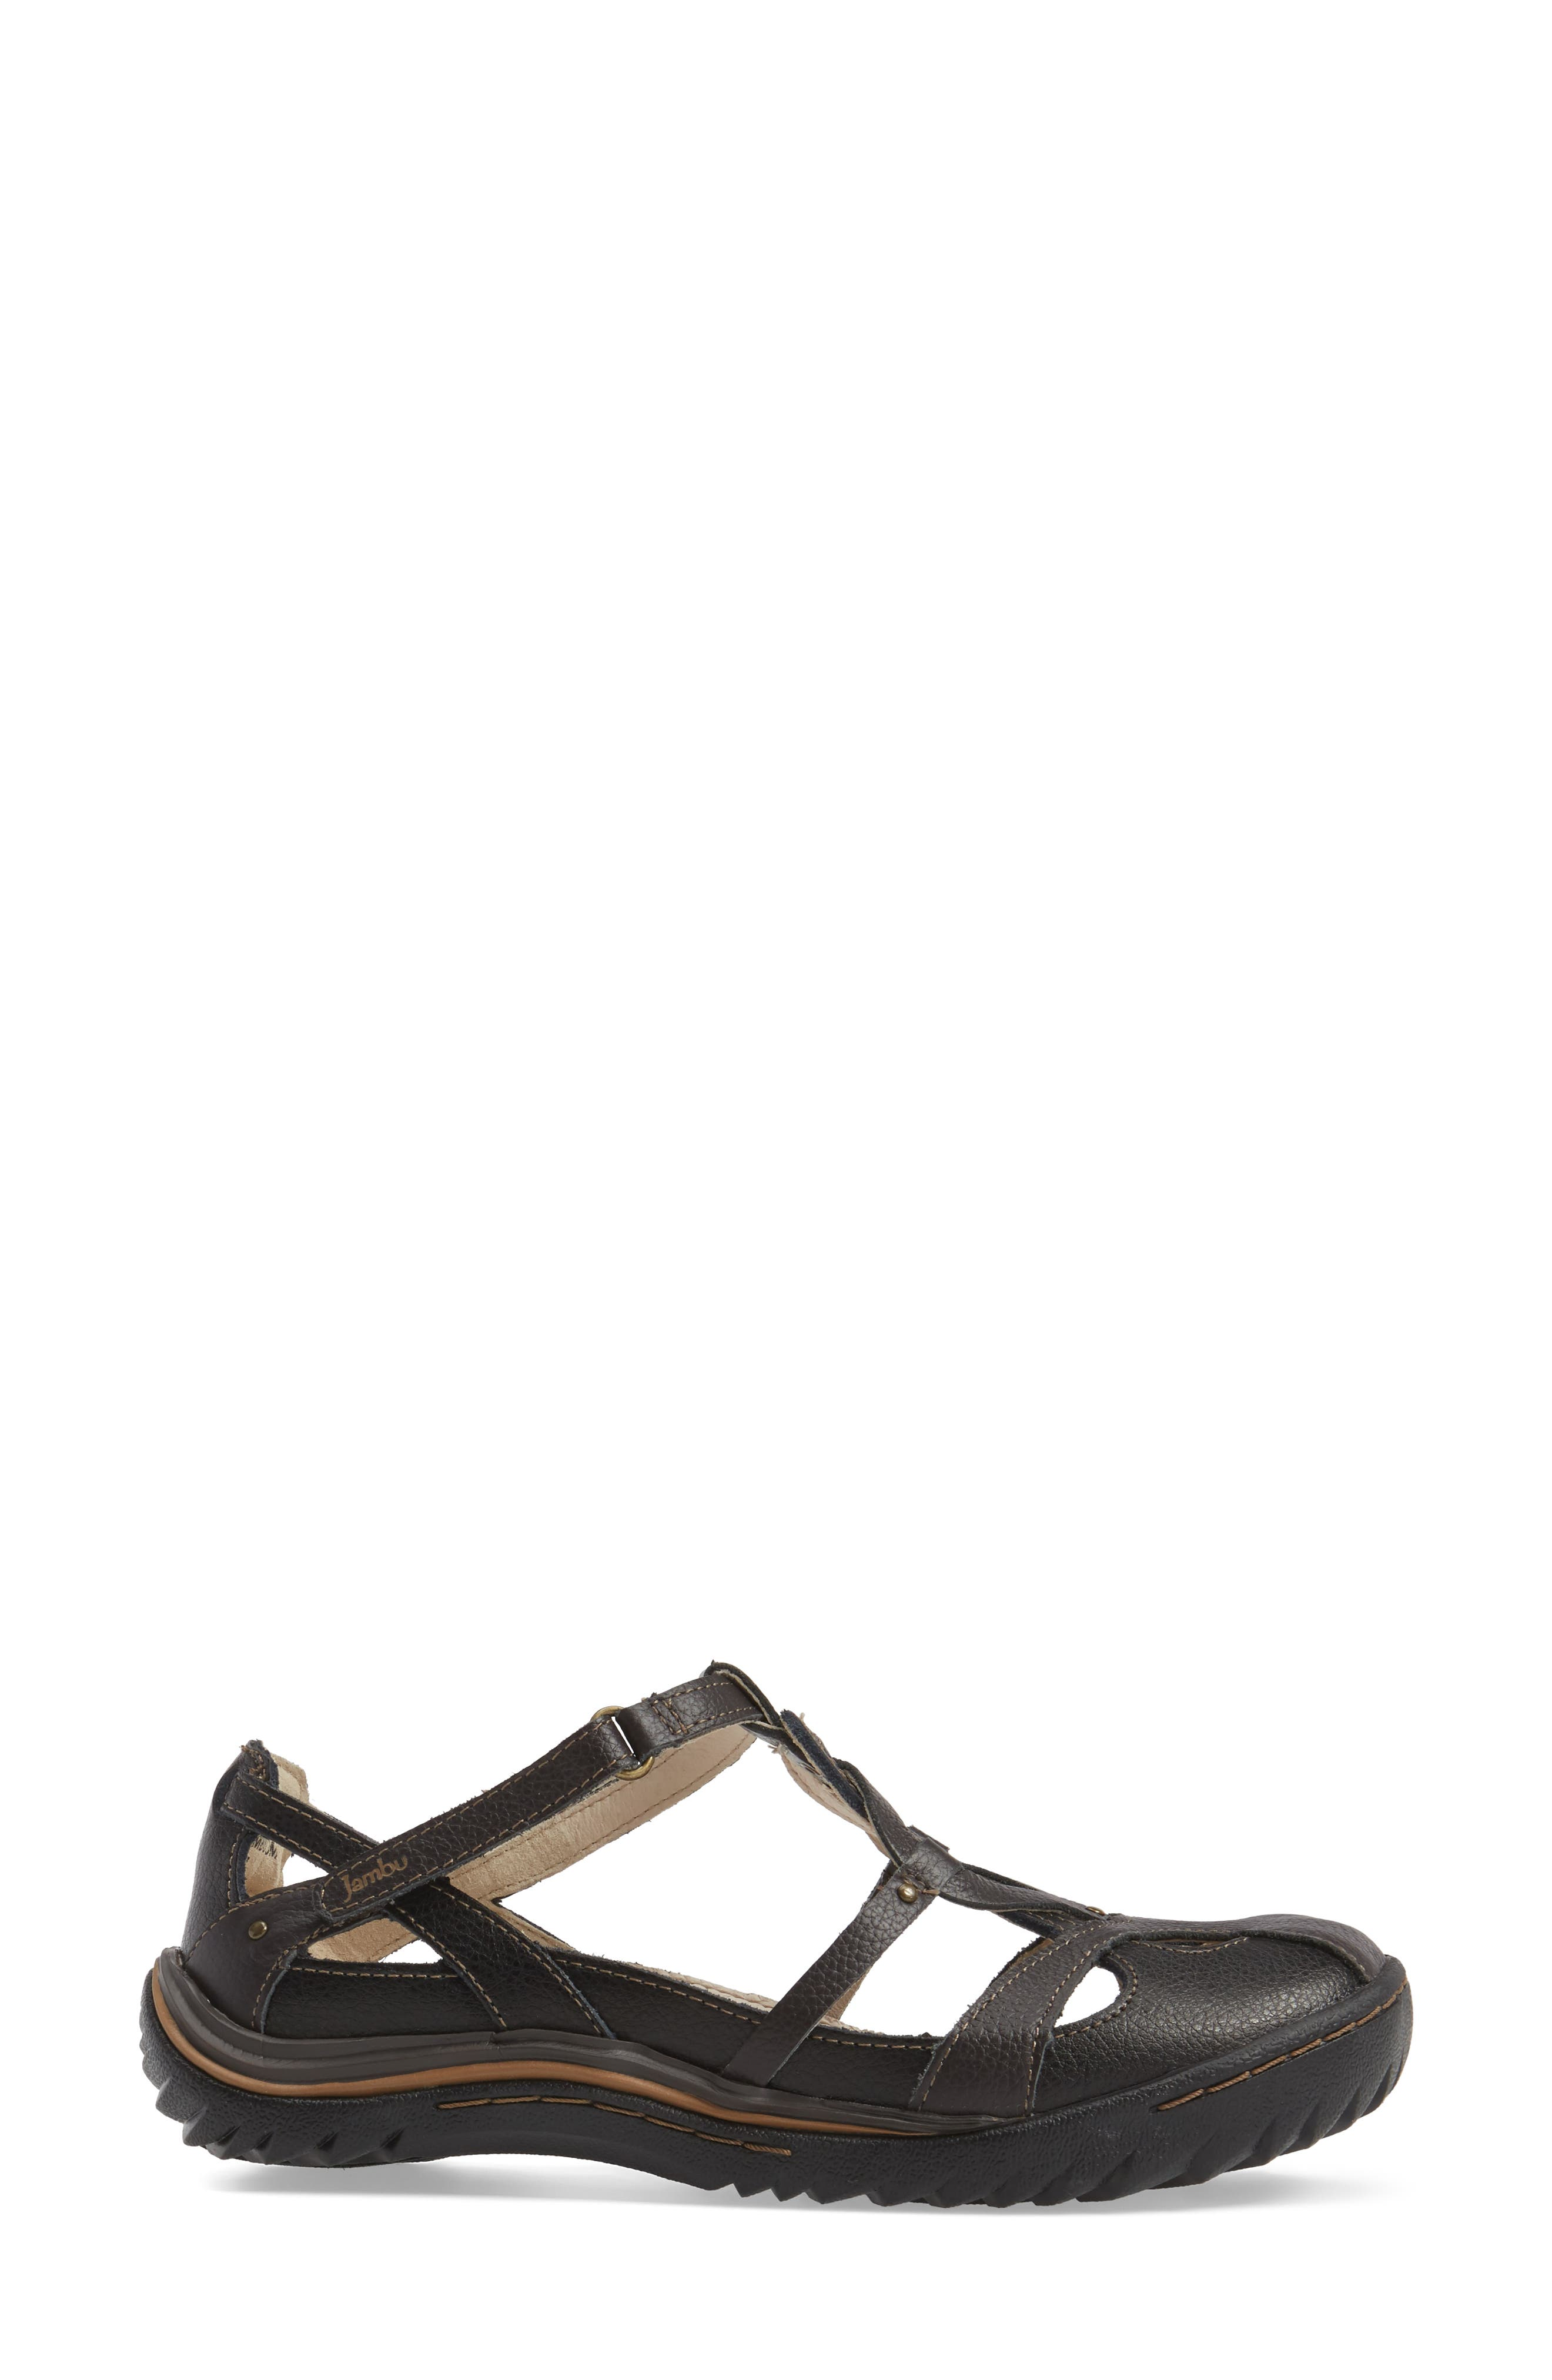 Spain Studded Strappy Sneaker,                             Alternate thumbnail 3, color,                             BLACK LEATHER